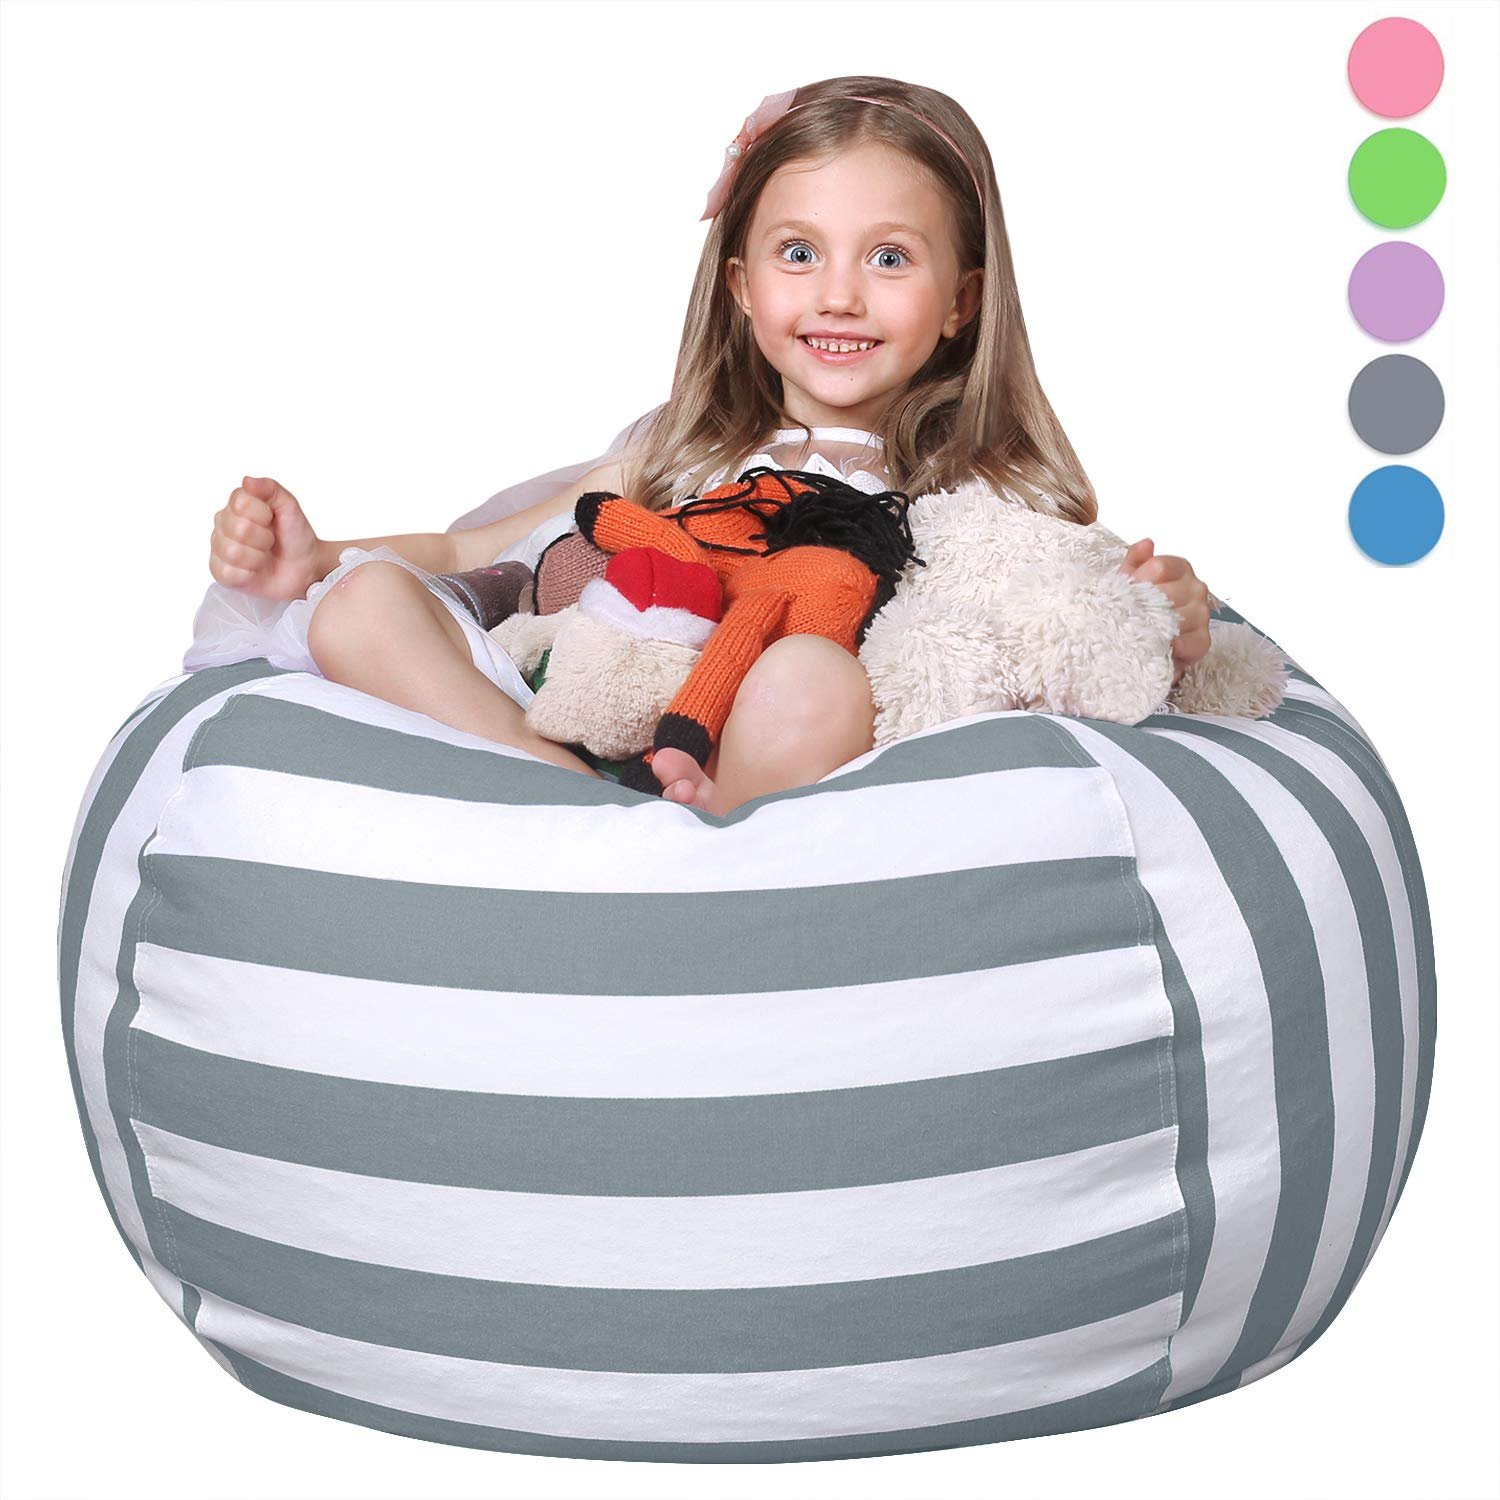 WEKAPO Stuffed Animal Storage Bean Bag Chair for Kids